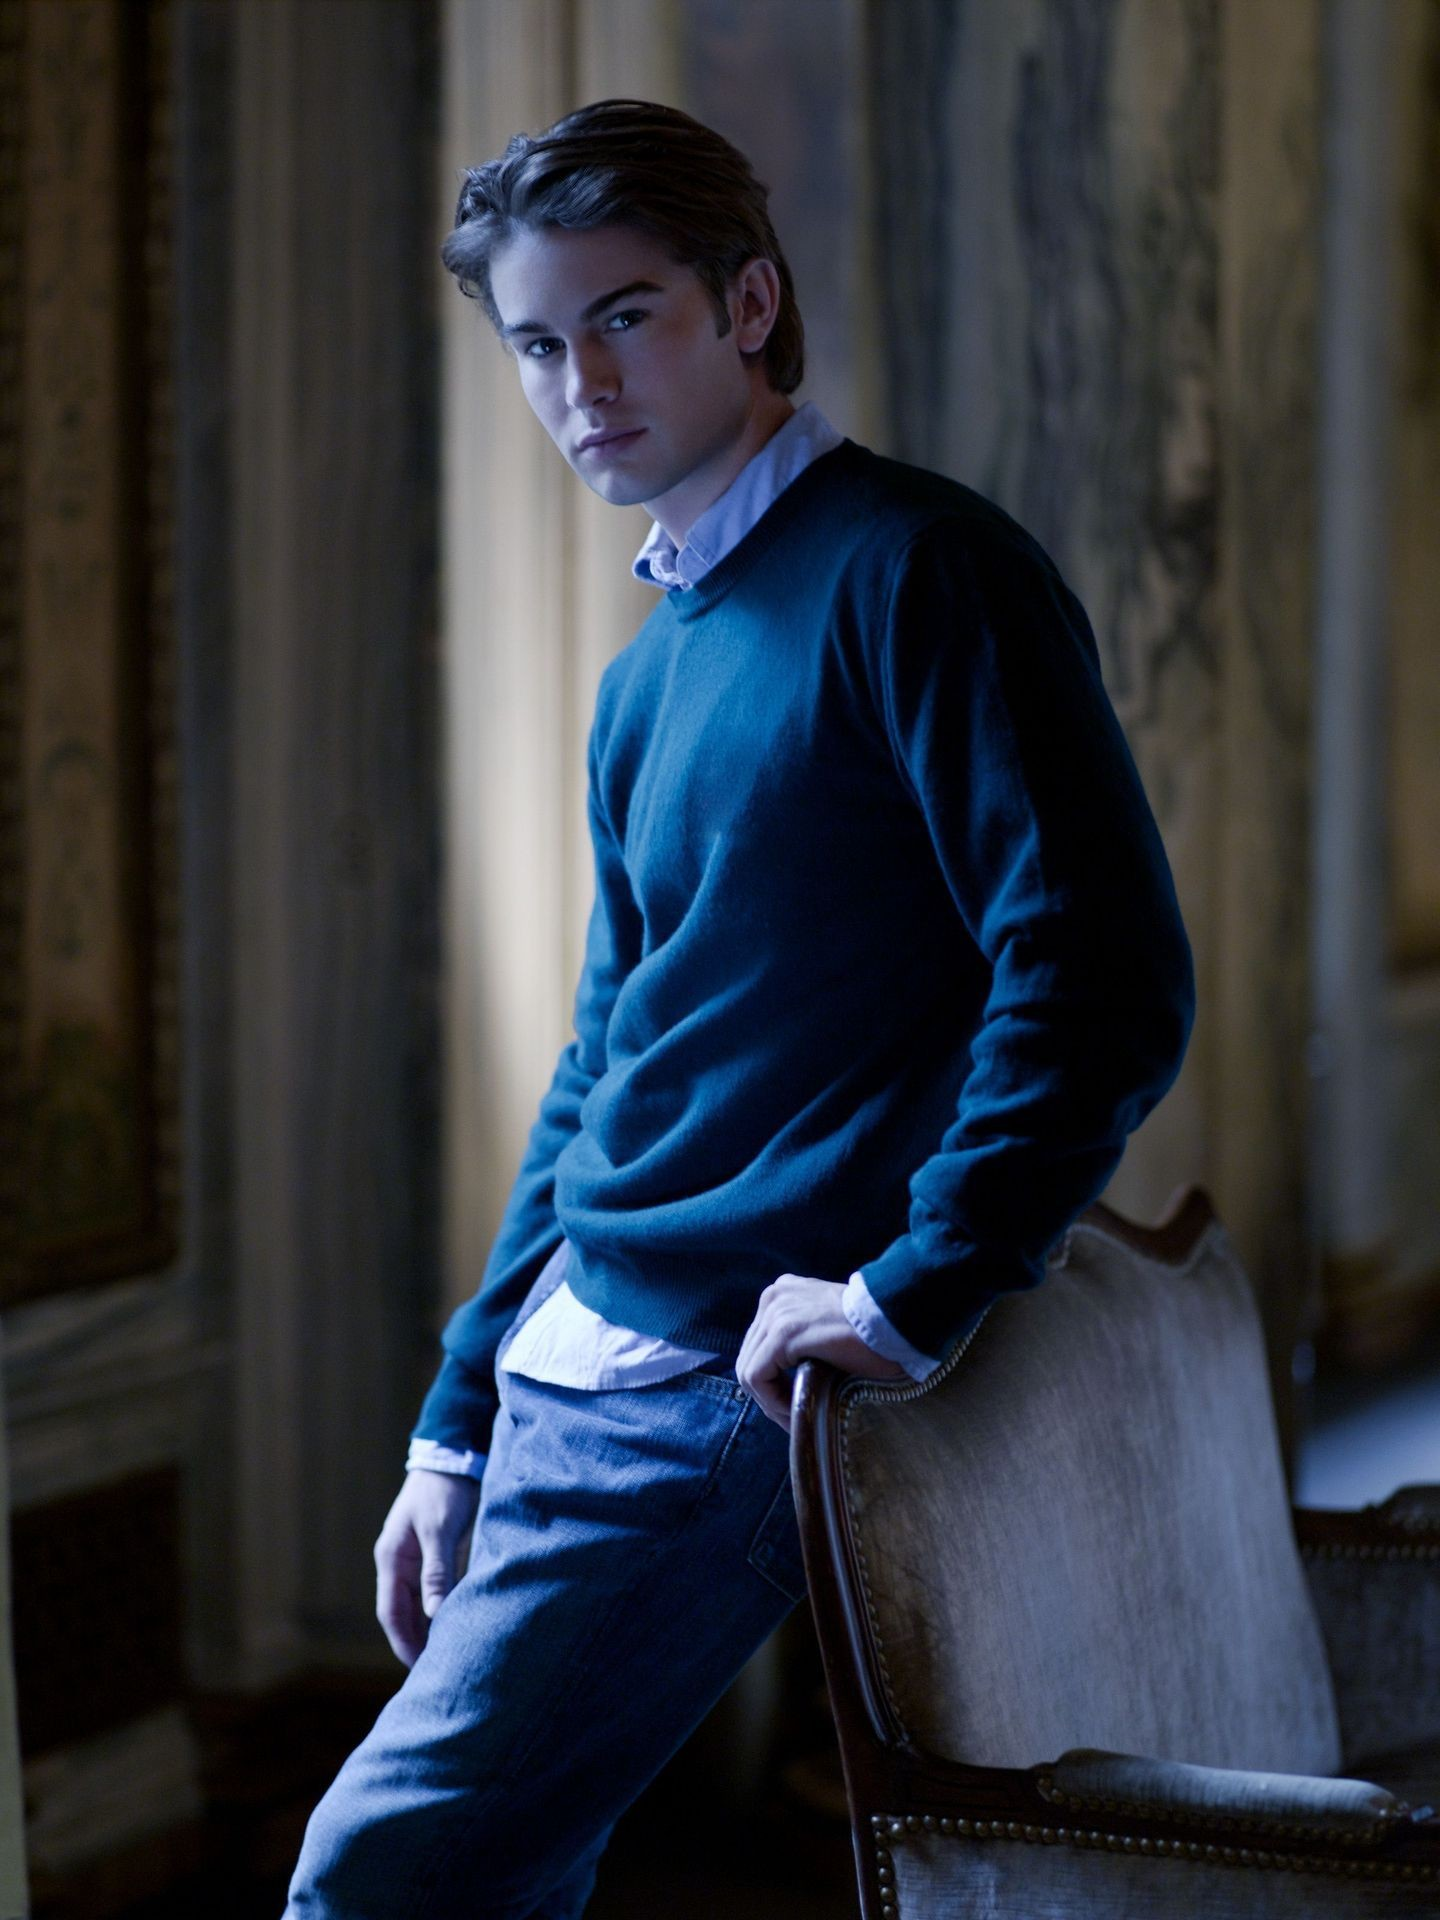 Res: 1440x1920, Chase Crawford, Nate Archibald